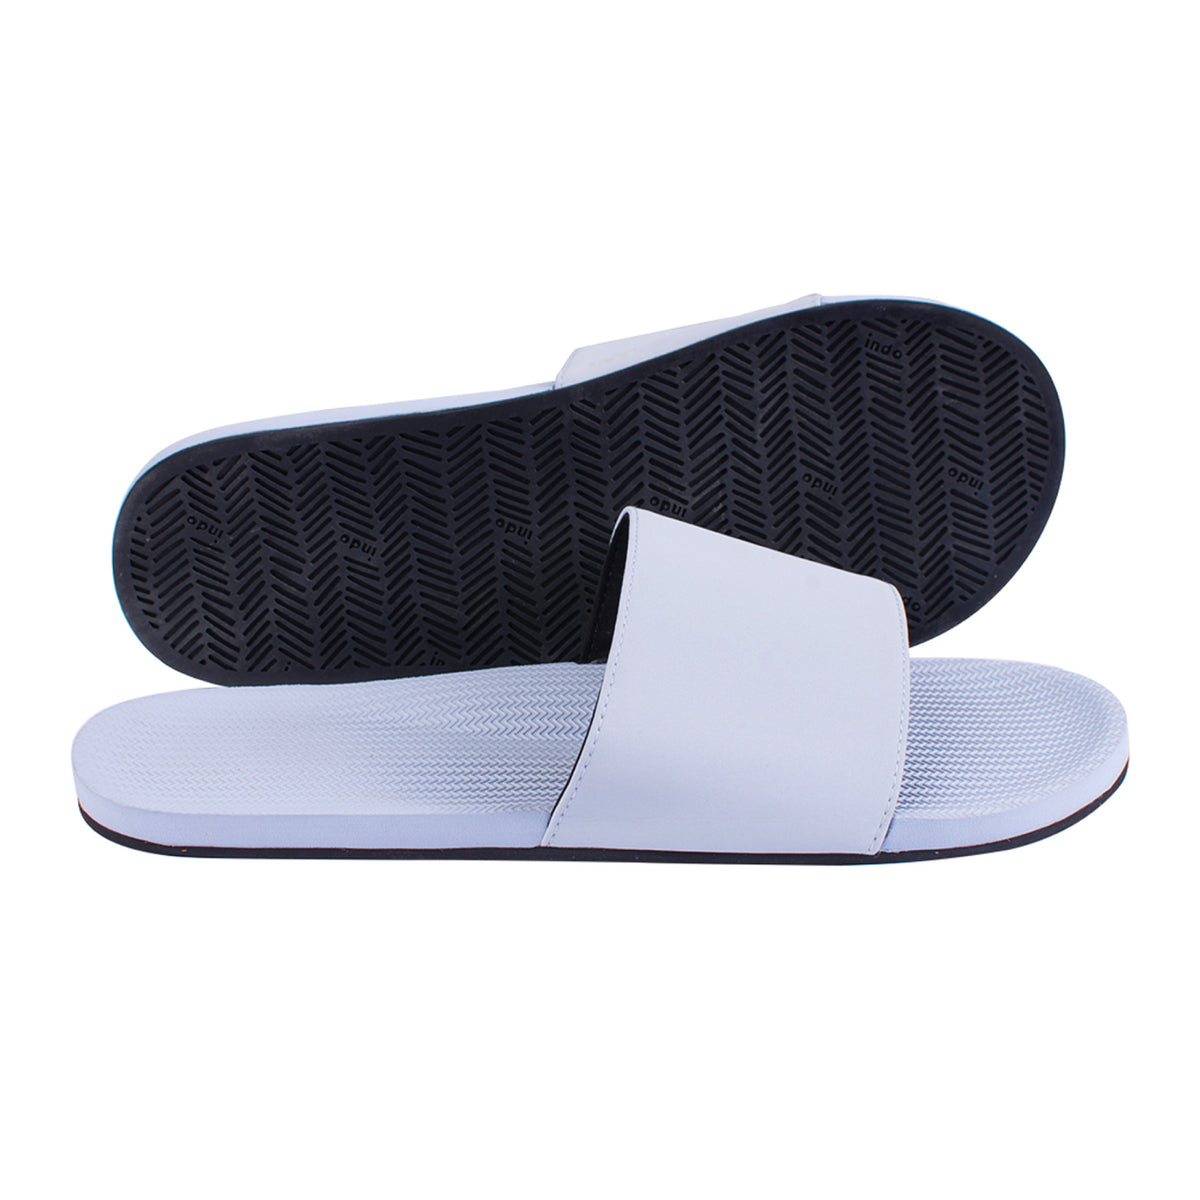 Men's Slides Light Shore - Lightweight, durable, waterproof, comfortable. Sustainably made vegan shoes using natural rubber and recycled tires